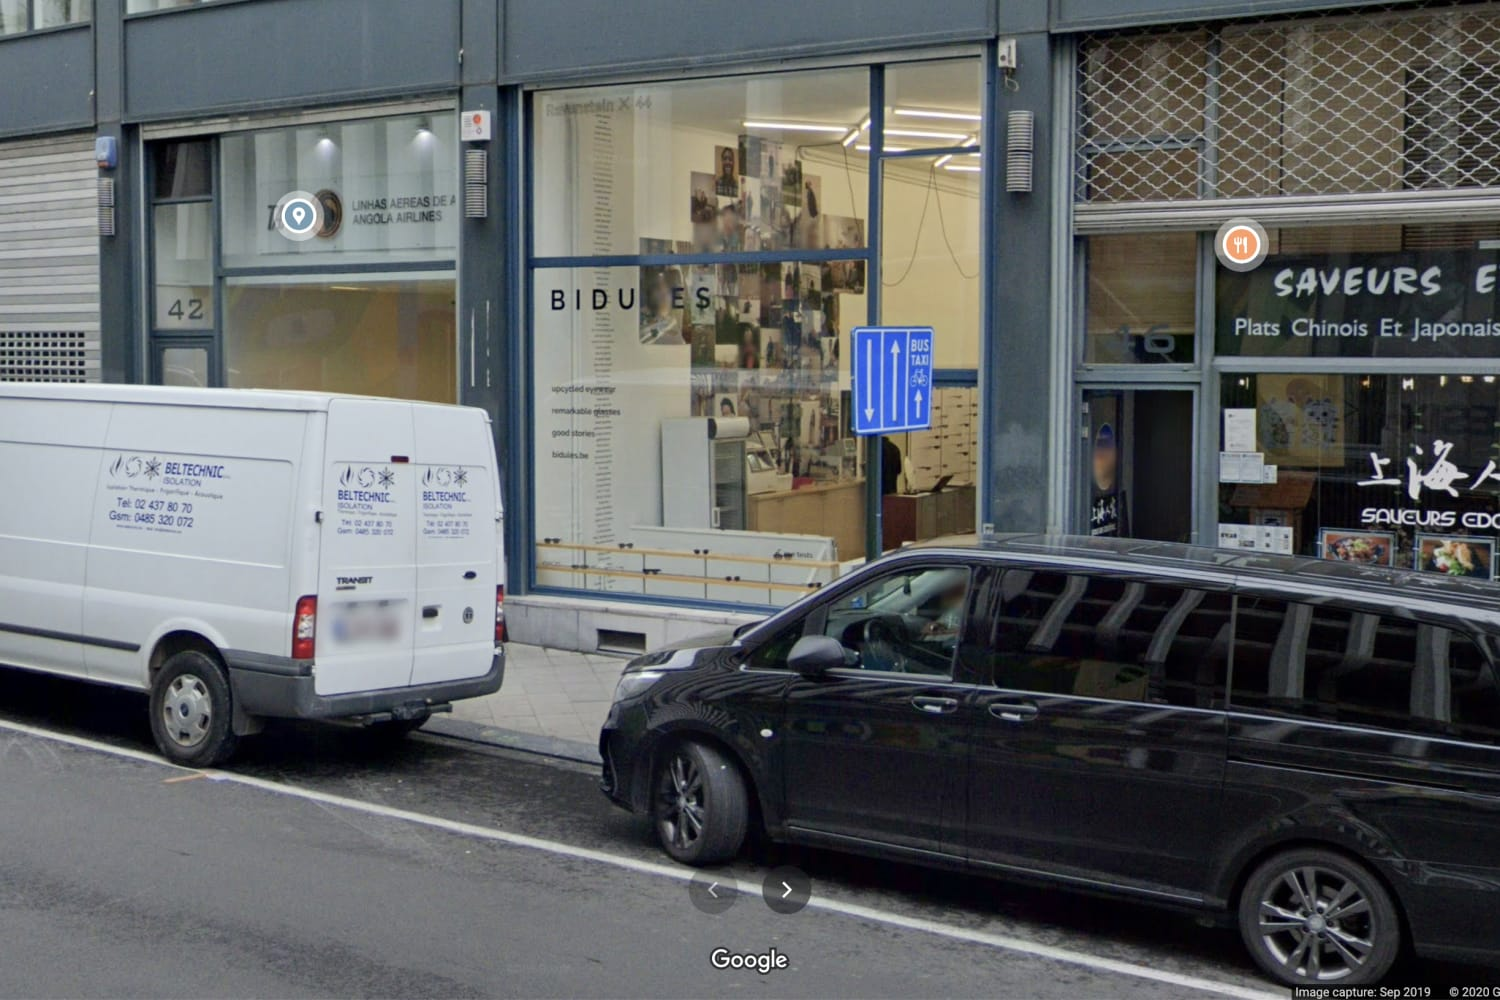 A view from Bidules glasses store Rue Ravenstein Bruxelles on Google Maps back in 2020